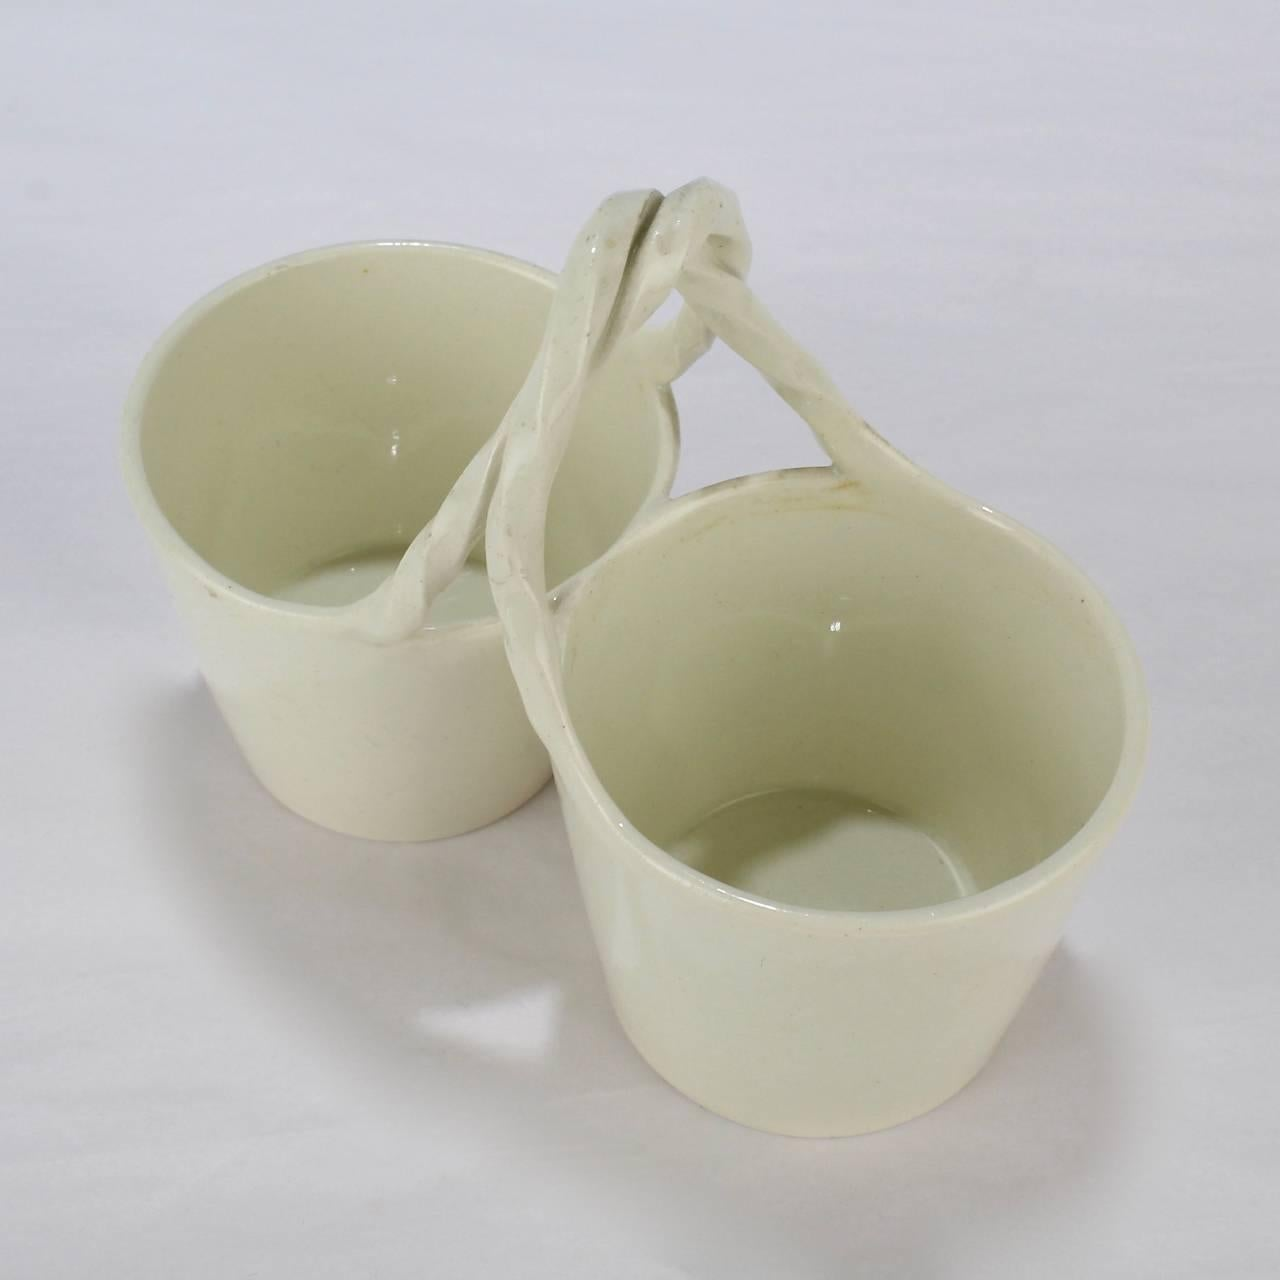 Antique 18th Century Wedgwood Creamware Basket Form Double Salt Cellar For Sale 3 : double salt cellar  - Aeropaca.Org